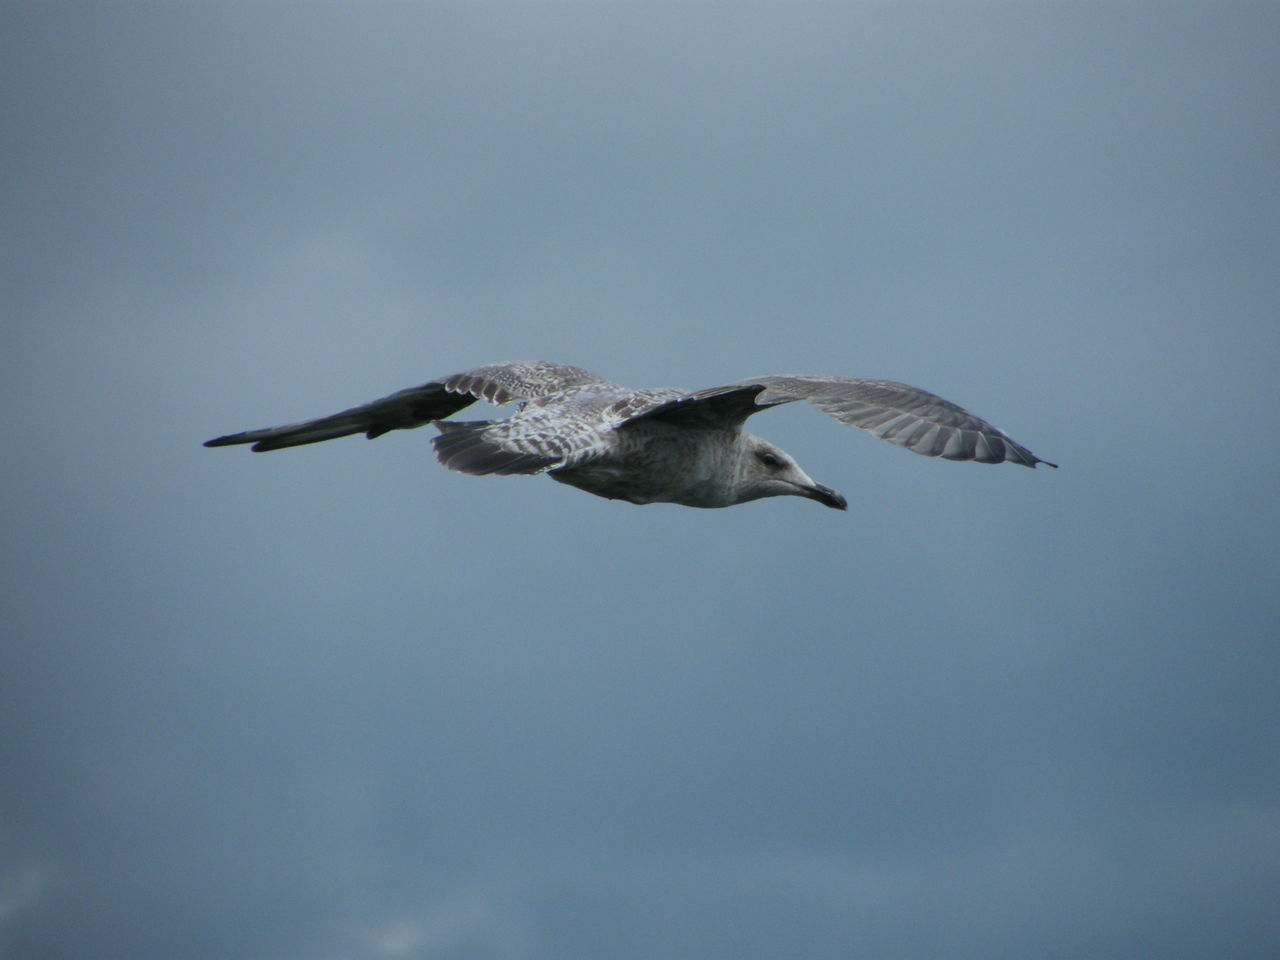 Animal Themes Animals In The Wild Bird Clear Sky Day Flying Gull Herring Gull Juvenille Low Angle View Mid-air Motion Nature No People One Animal Outdoors Pembrokeshire Pembrokeshire Coast Pembrokeshire Coastal Path Seagull Sky Spread Wings Tenby